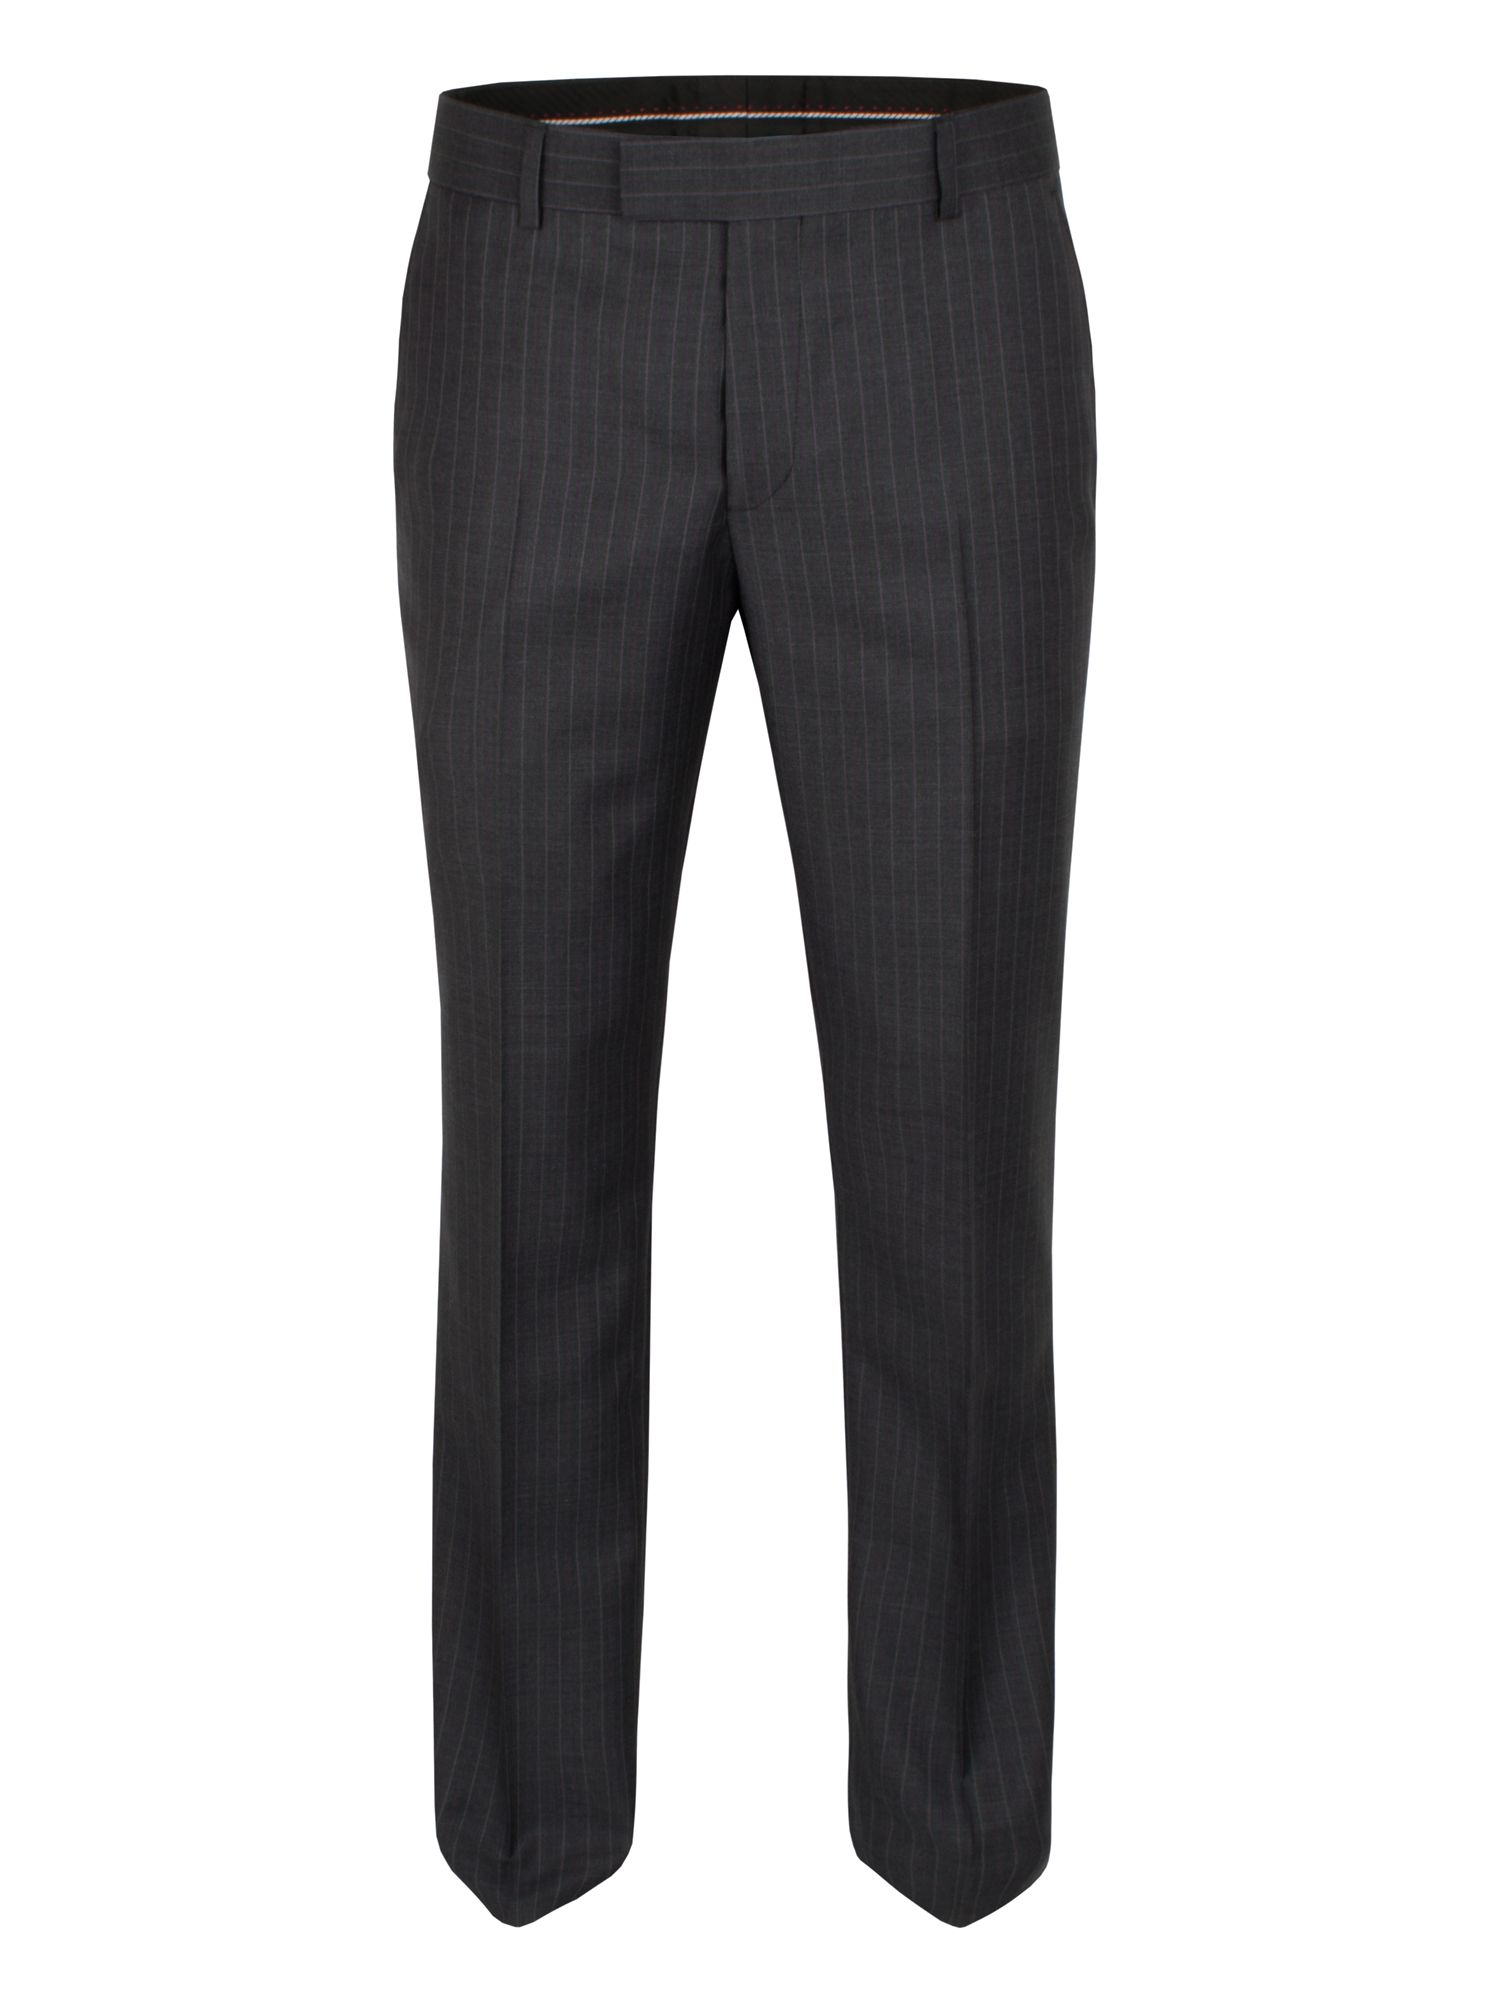 Grey purple pinstripe trouser